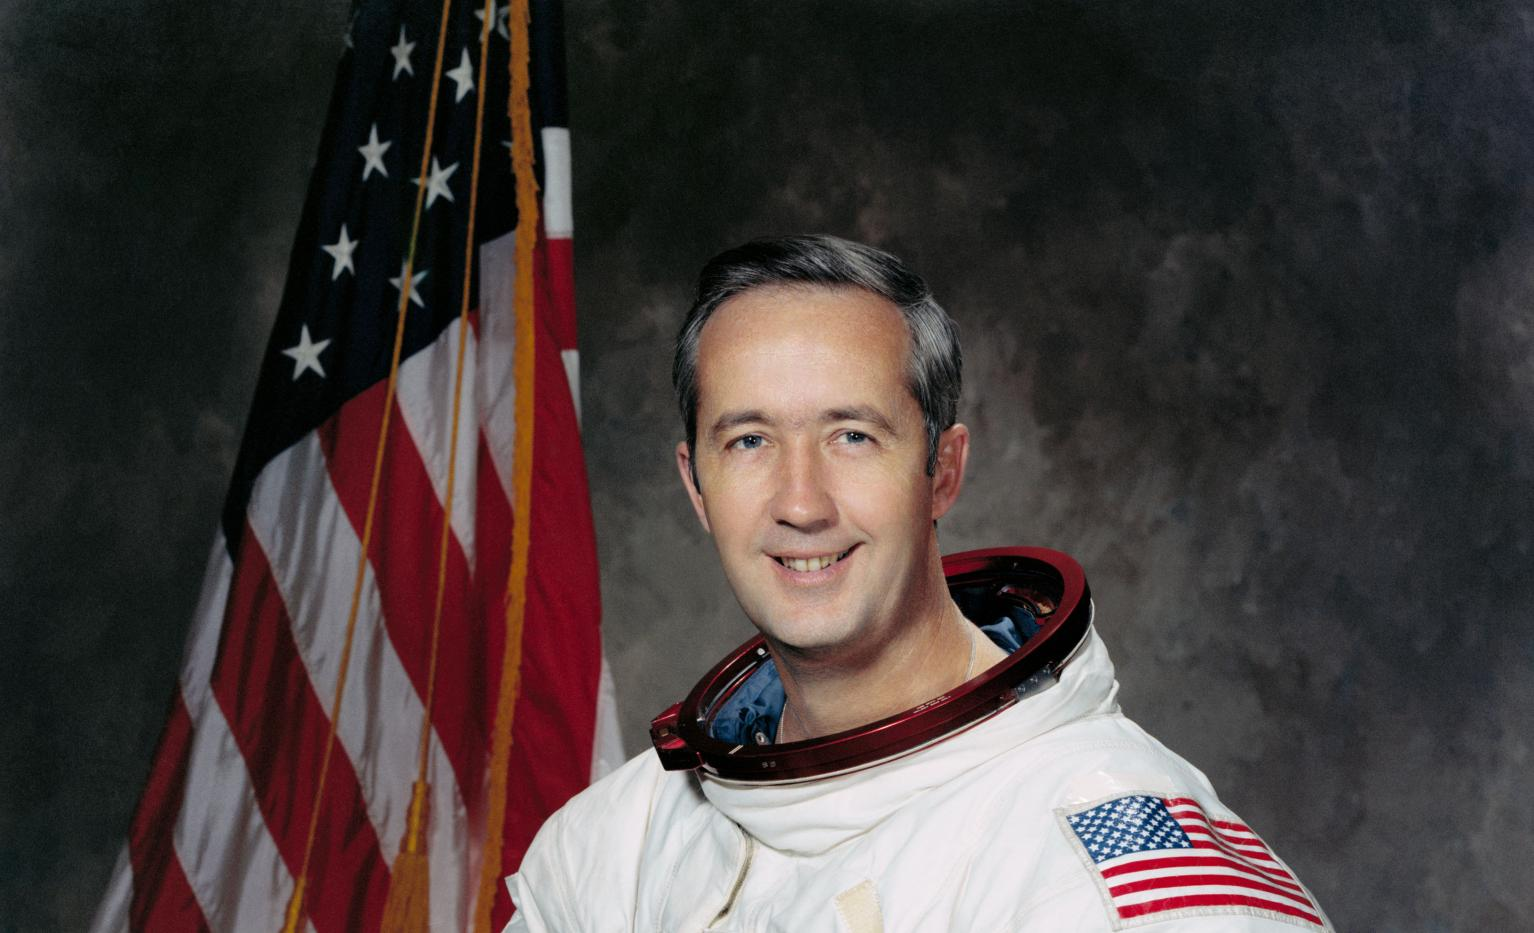 Astronaut James A. McDivitt